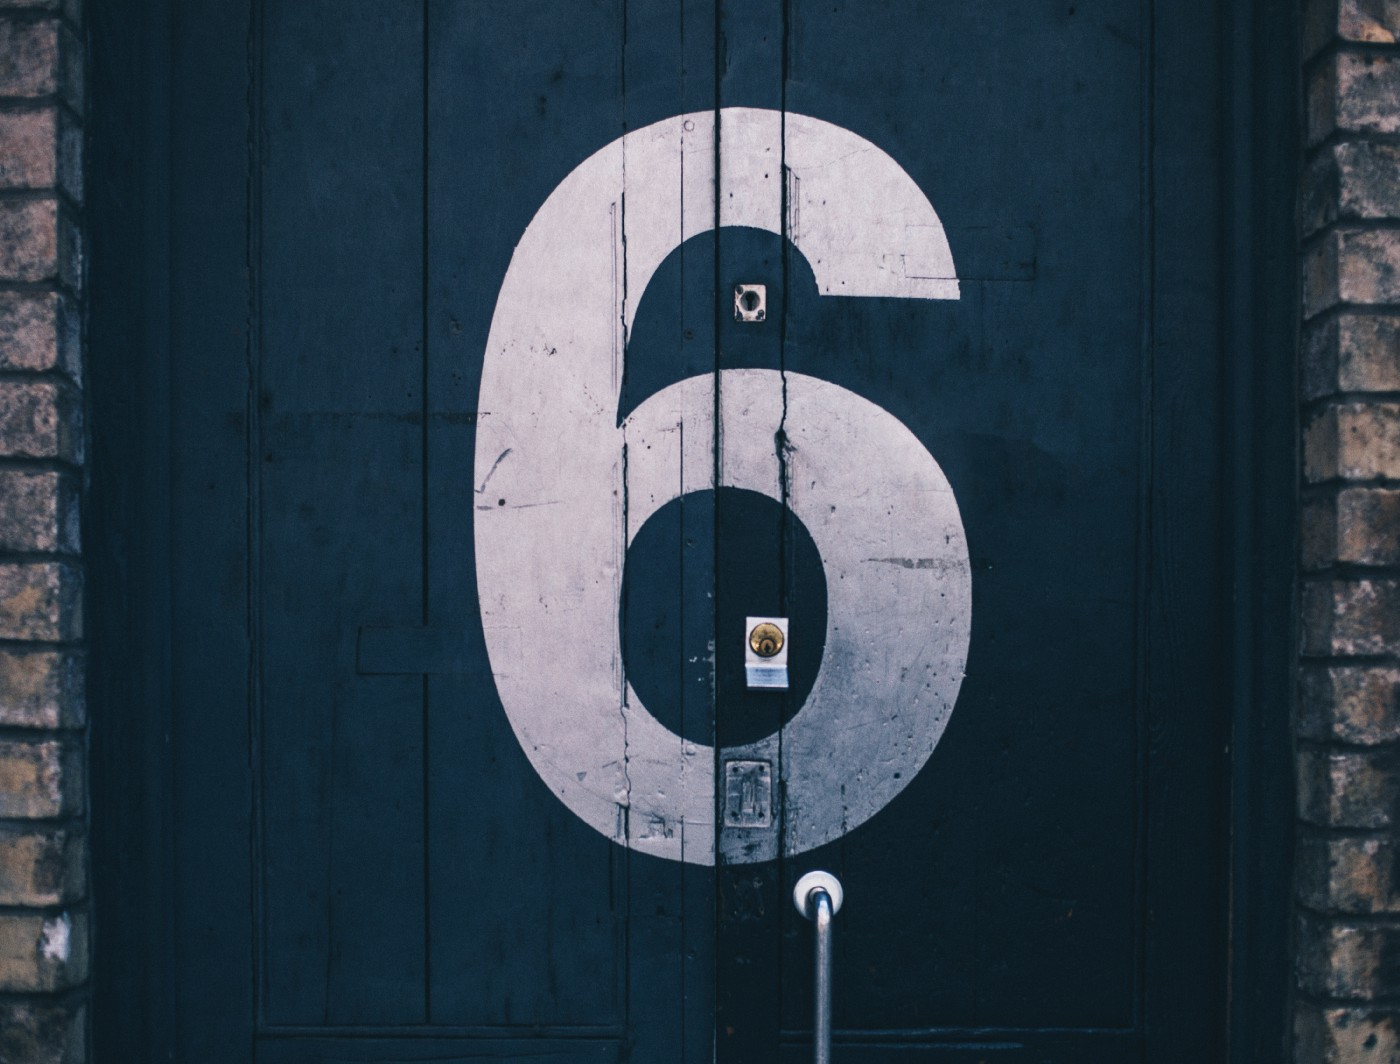 A door with the number six painted on it